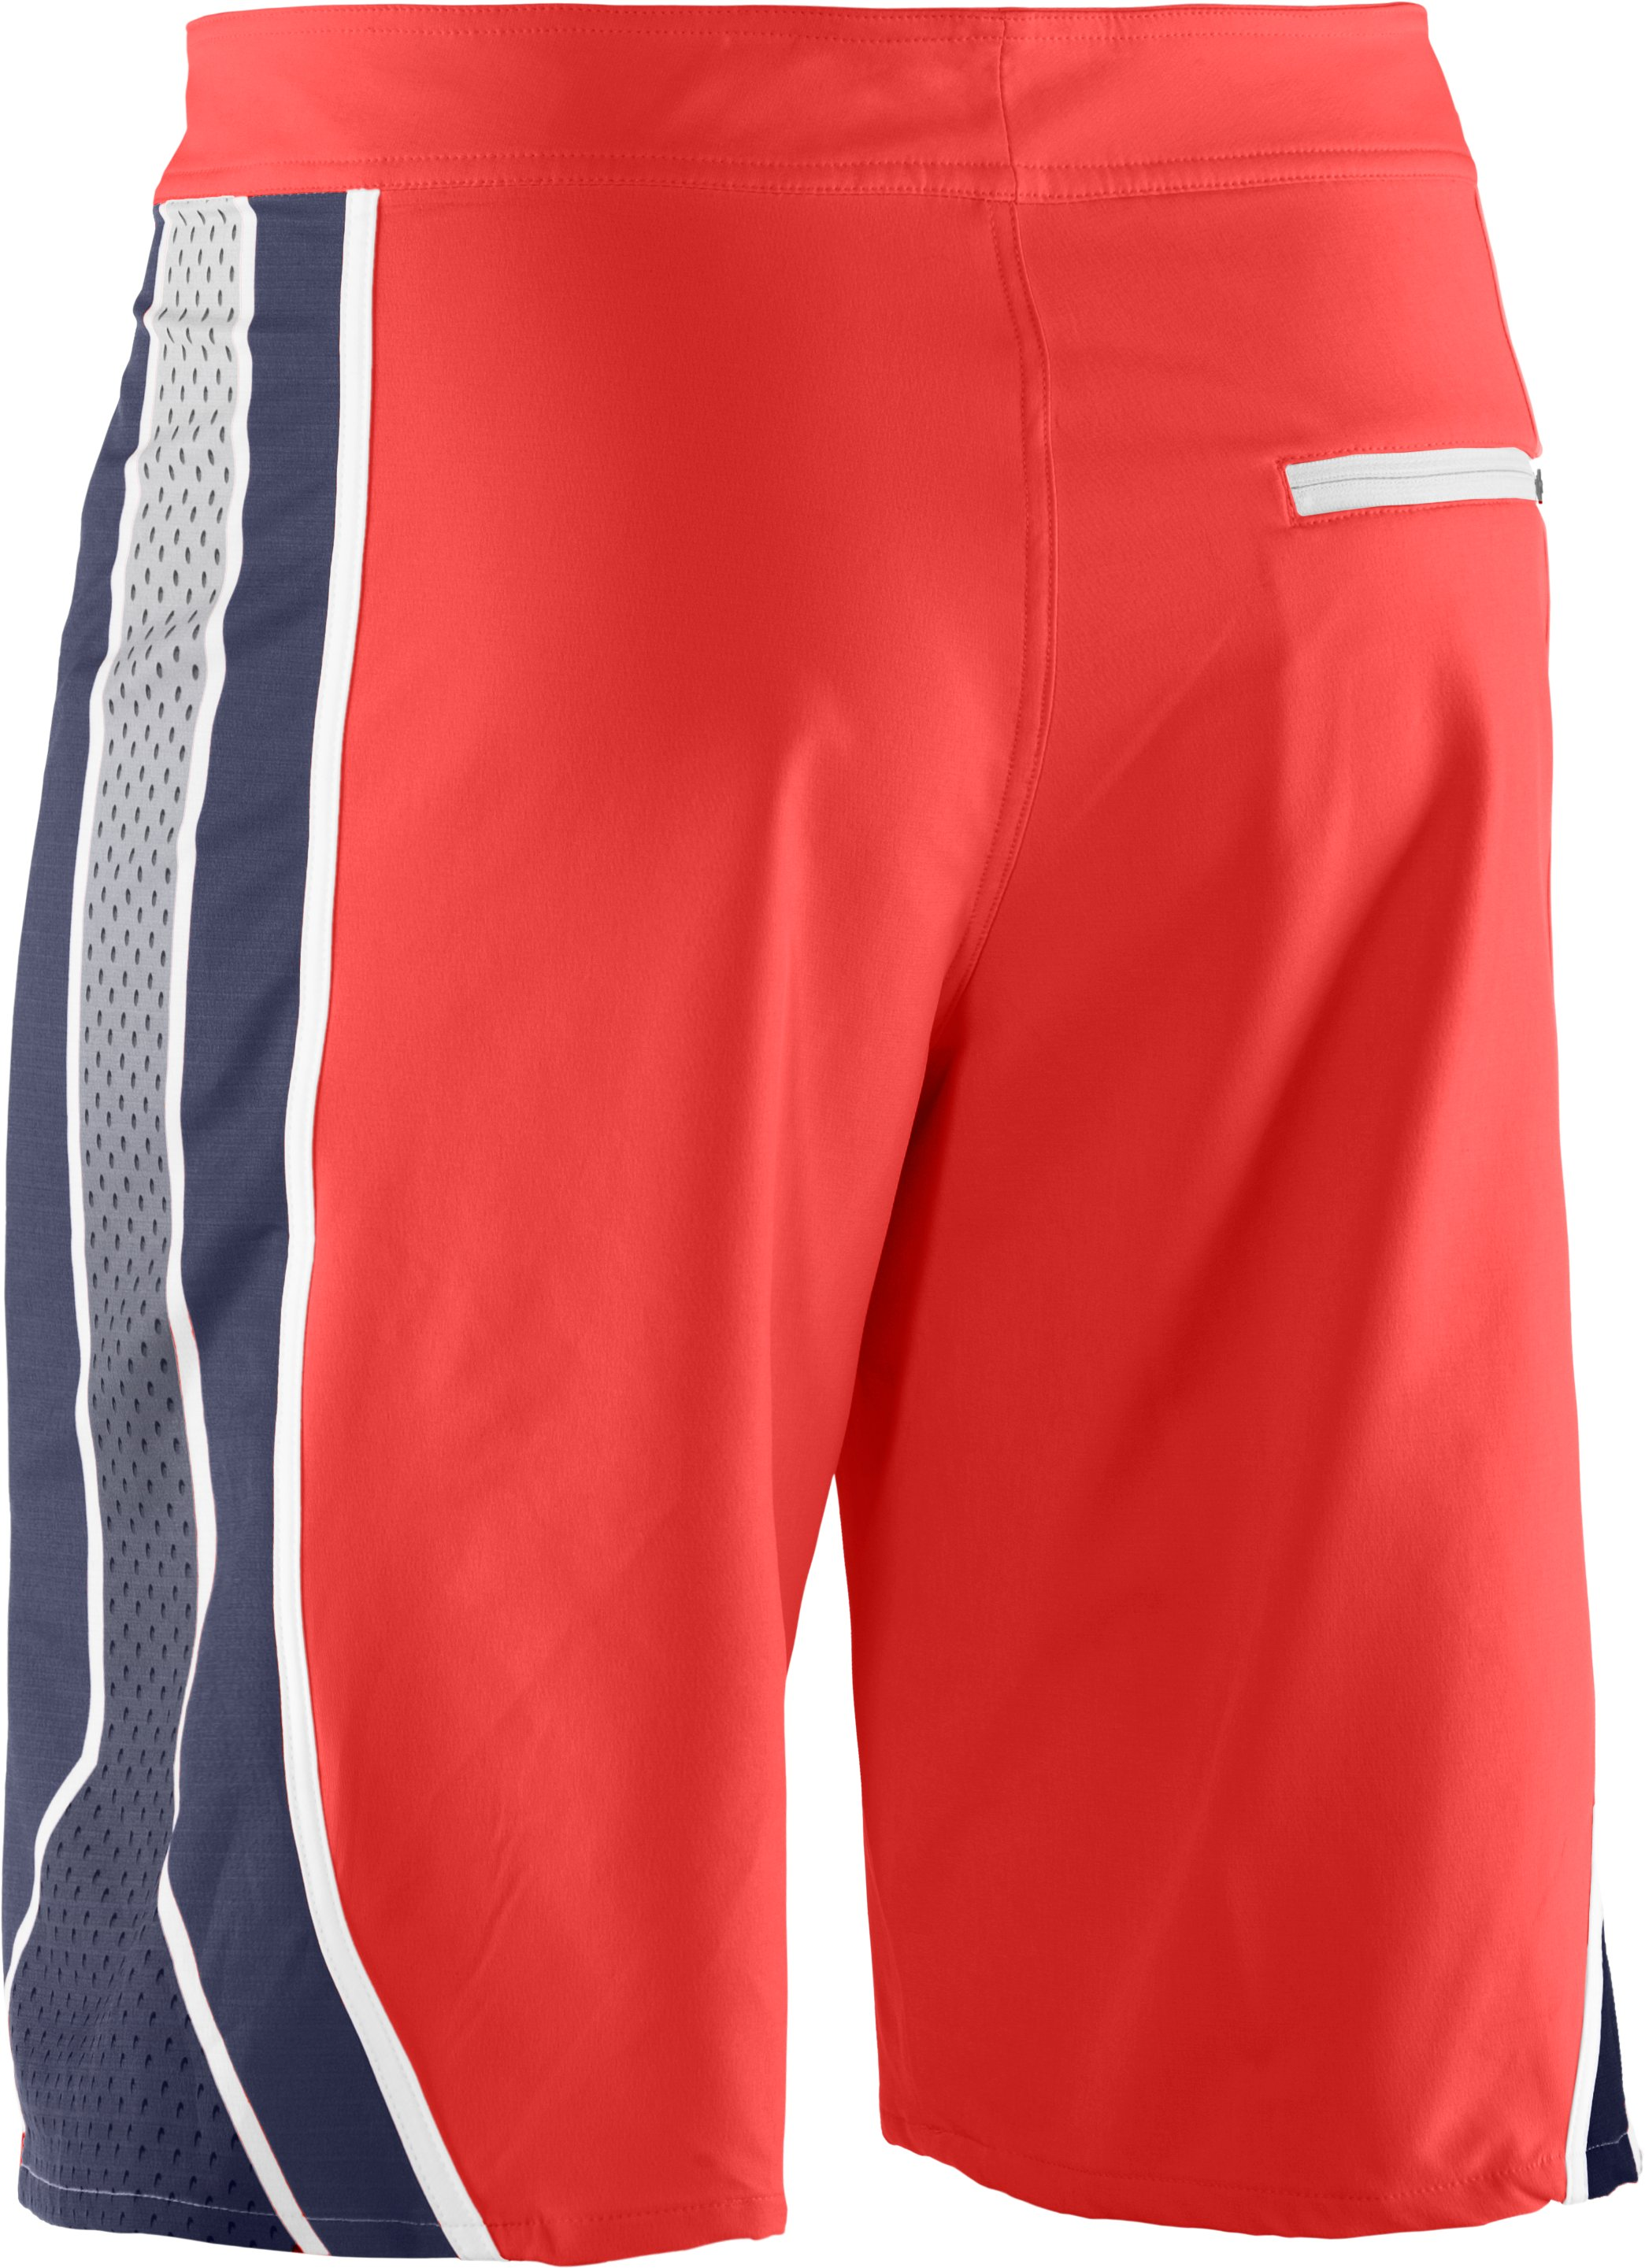 Men's UA Munnaruck Board Shorts, Fire, undefined